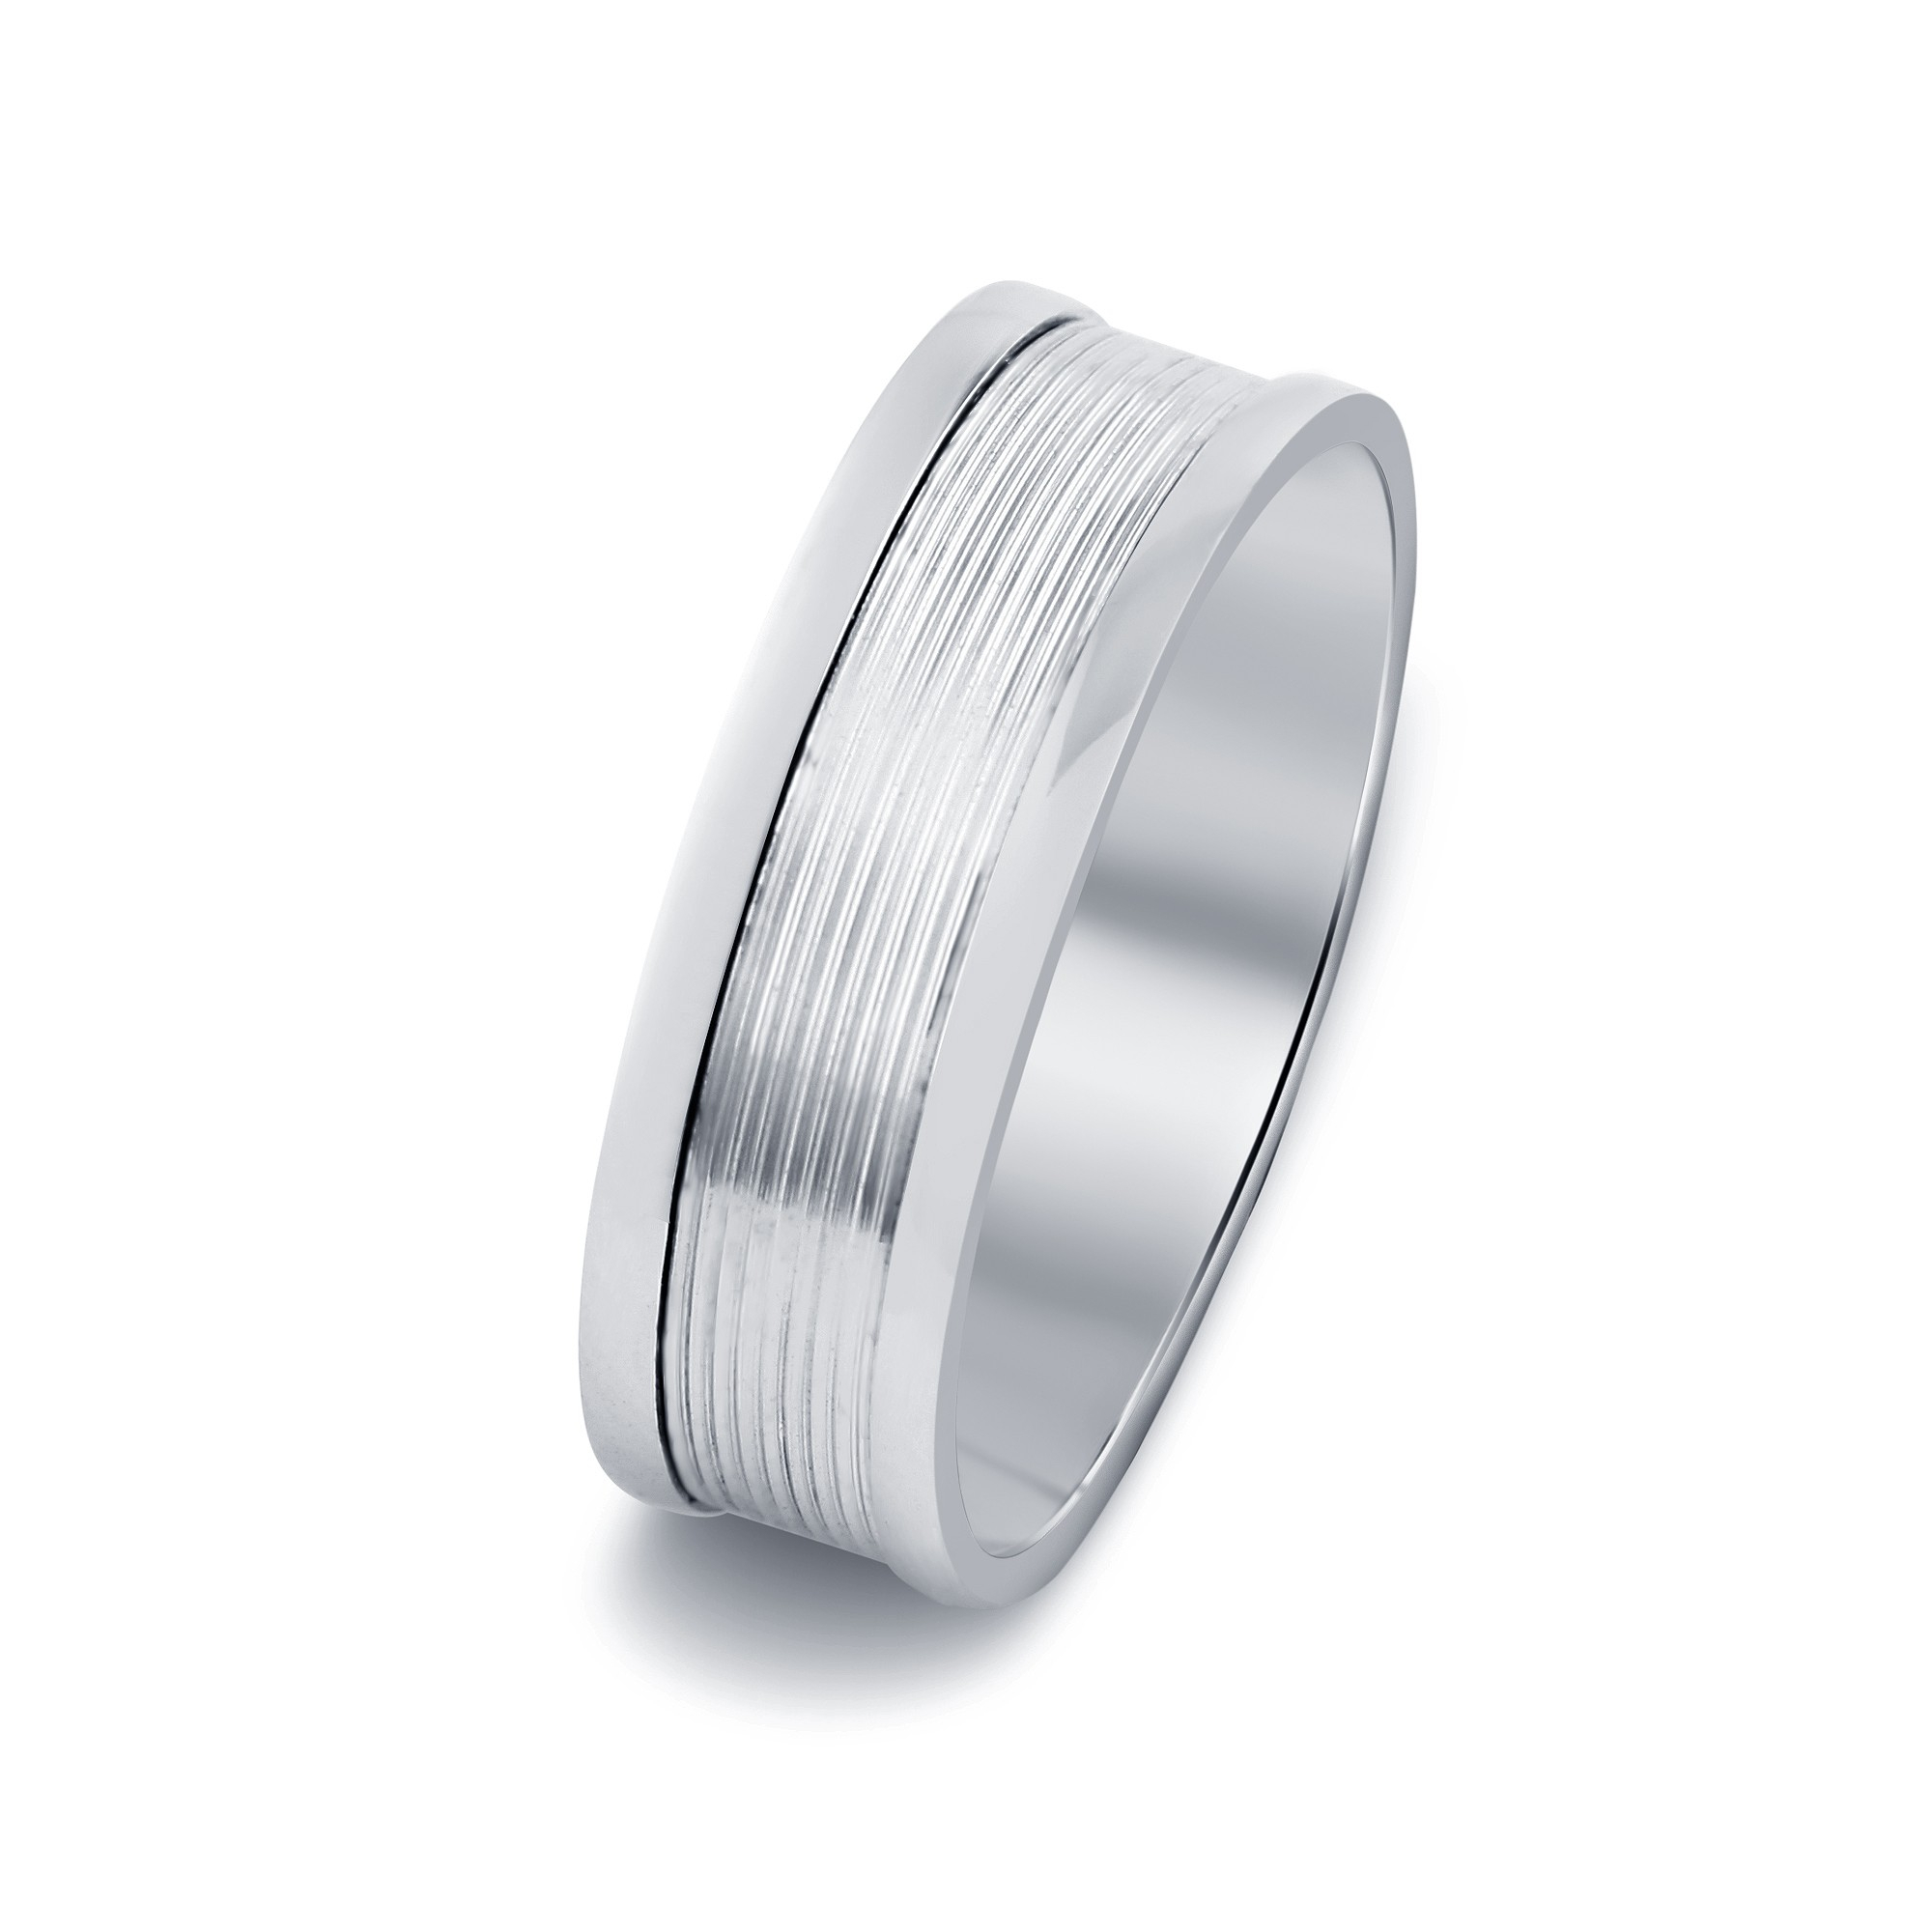 Patterned Stripes Inlay Wedding Band With Glossy Outer Rims In 18K In Most Up To Date White Stripes Wedding Rings (Gallery 10 of 15)